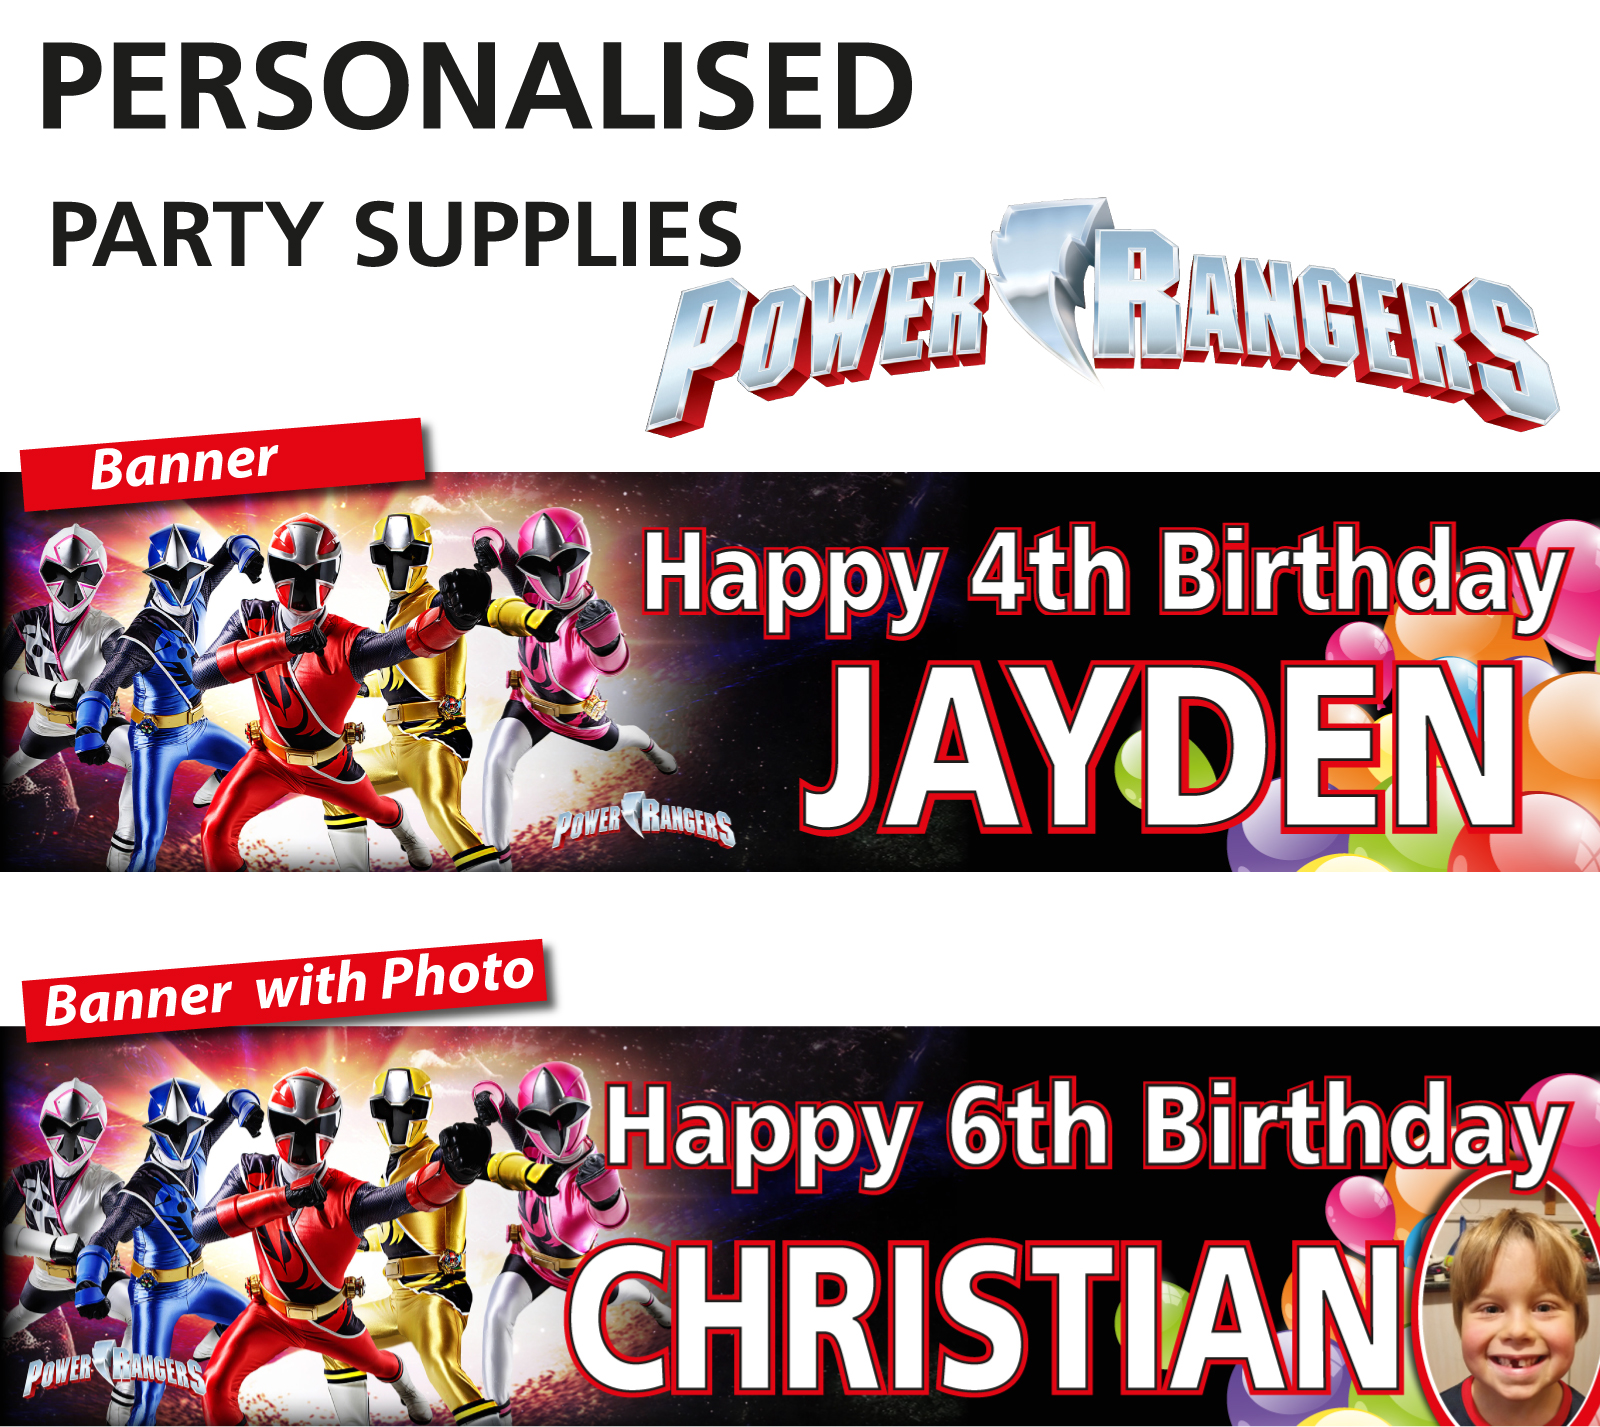 p0wer-rangers-birthday-party-ebay.jpg